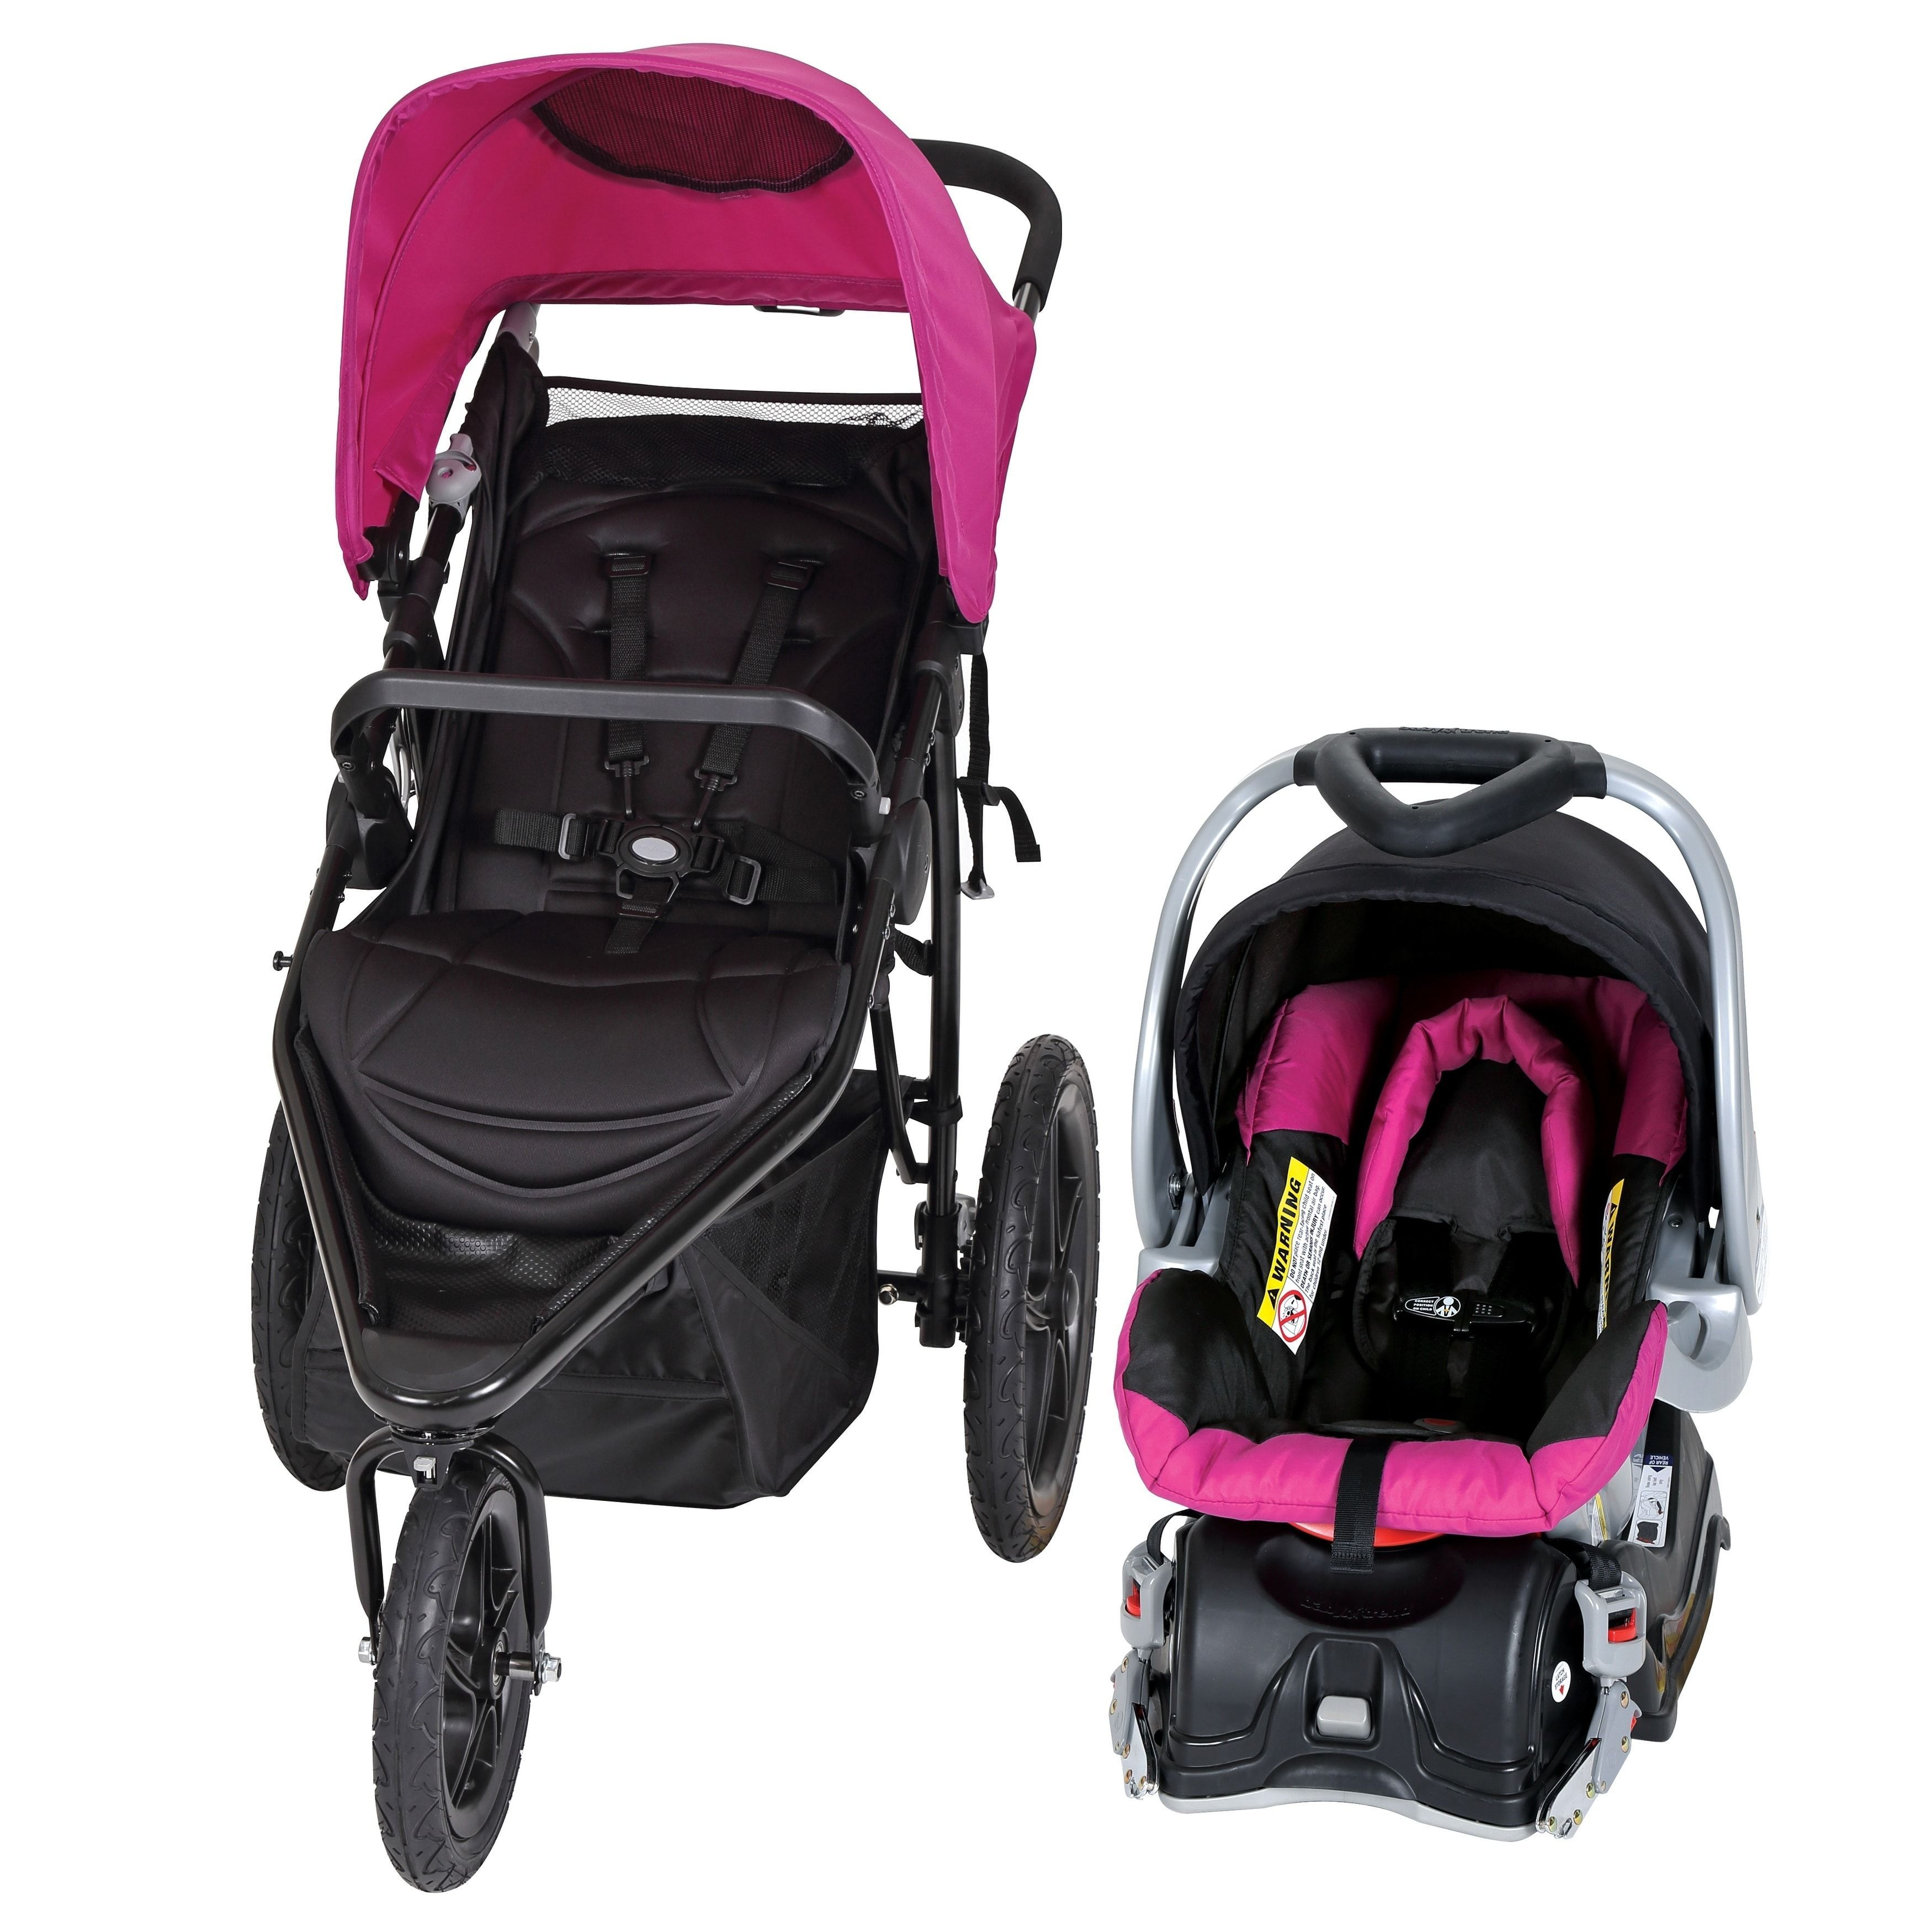 Baby Trend Stealth Jogger Travel System Viola